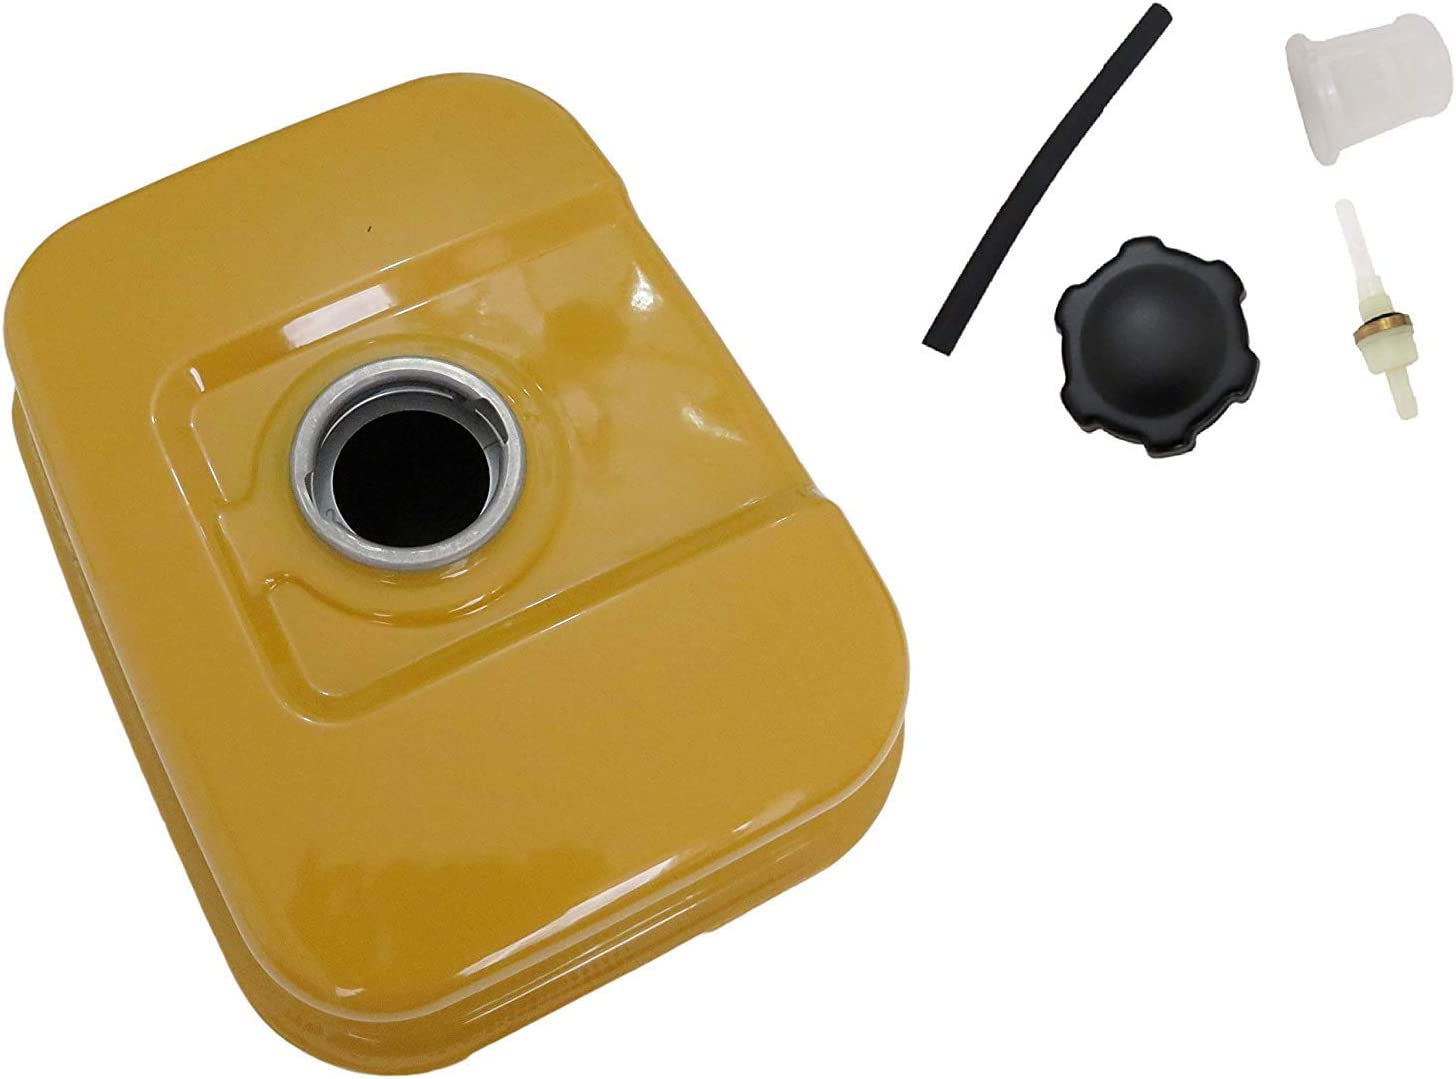 HGC FUEL TANK WITH CAP AND FILTER FOR ROBIN SUBARU EY20 ENGINES 227-60201-11